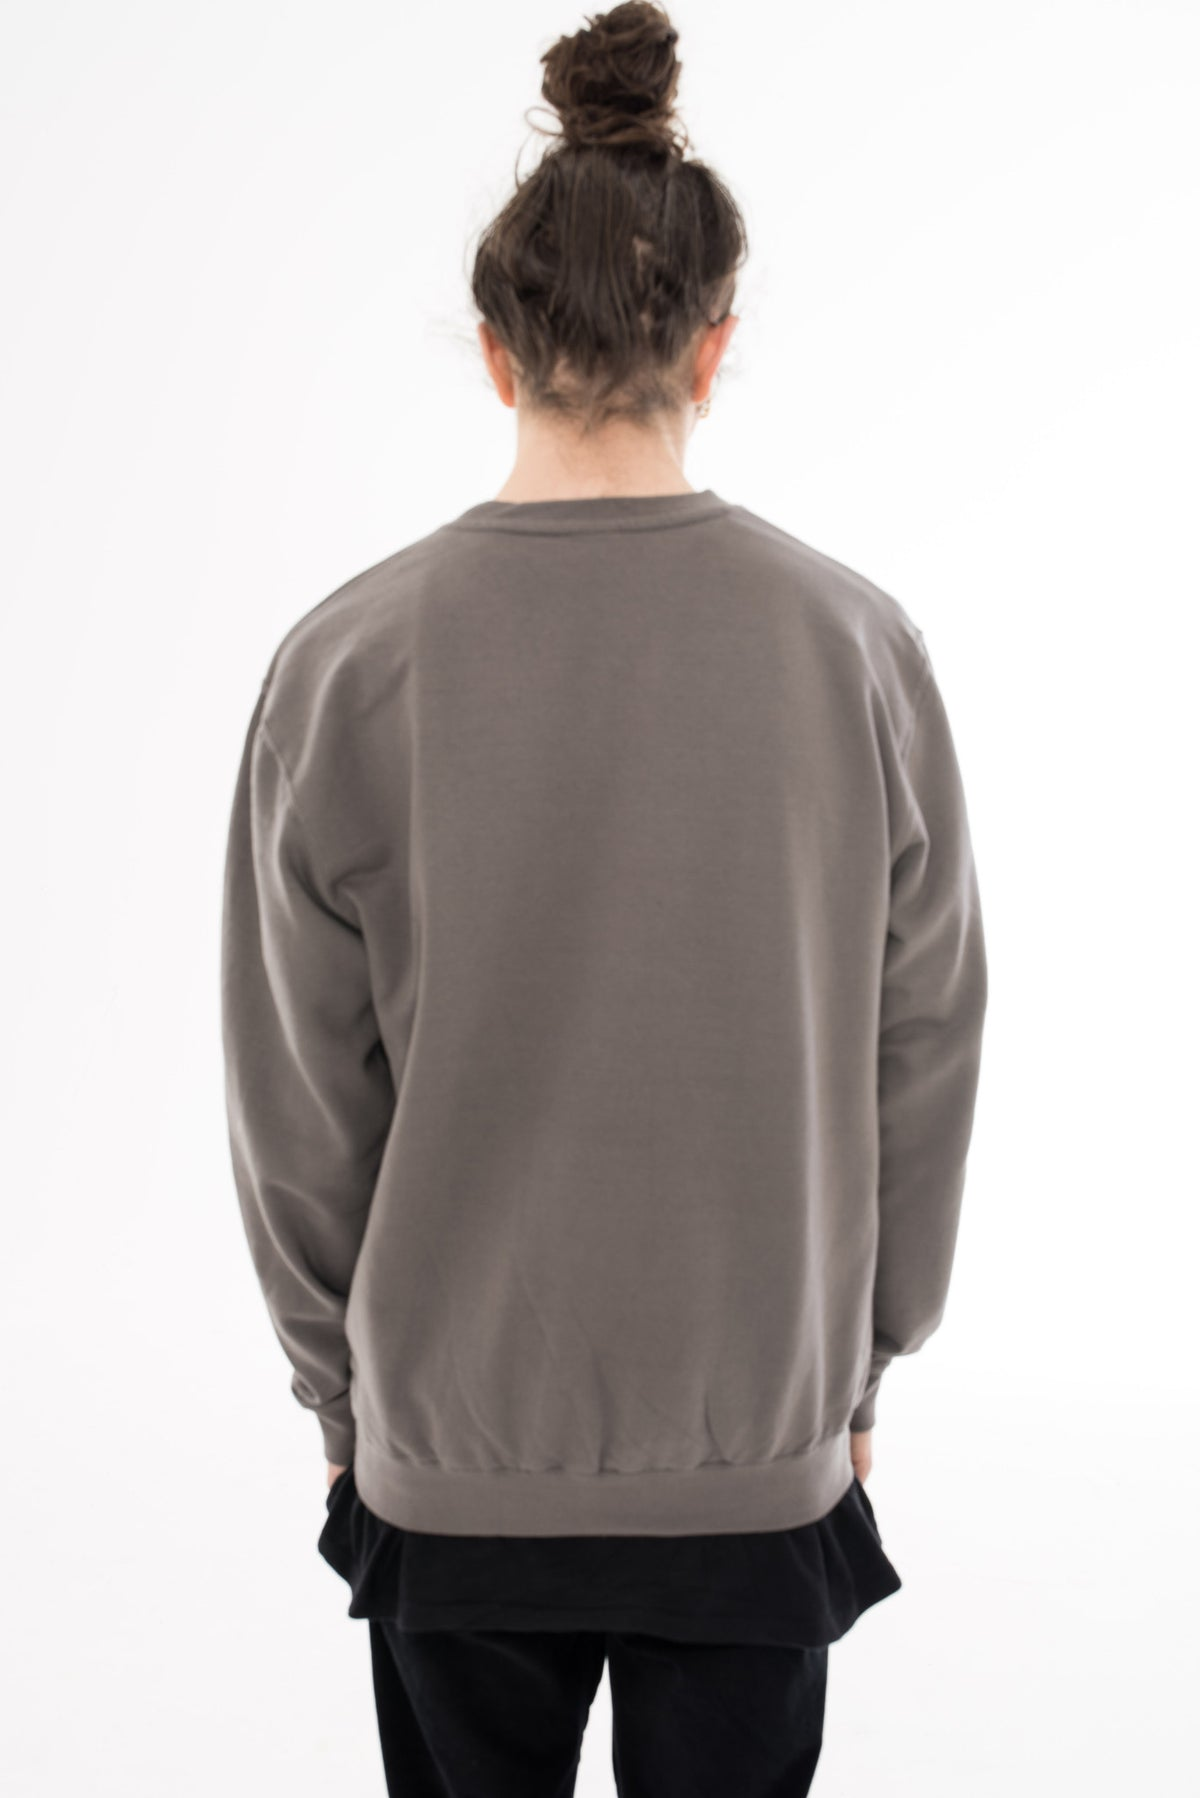 Buddha Girl Jumper - Steel Grey